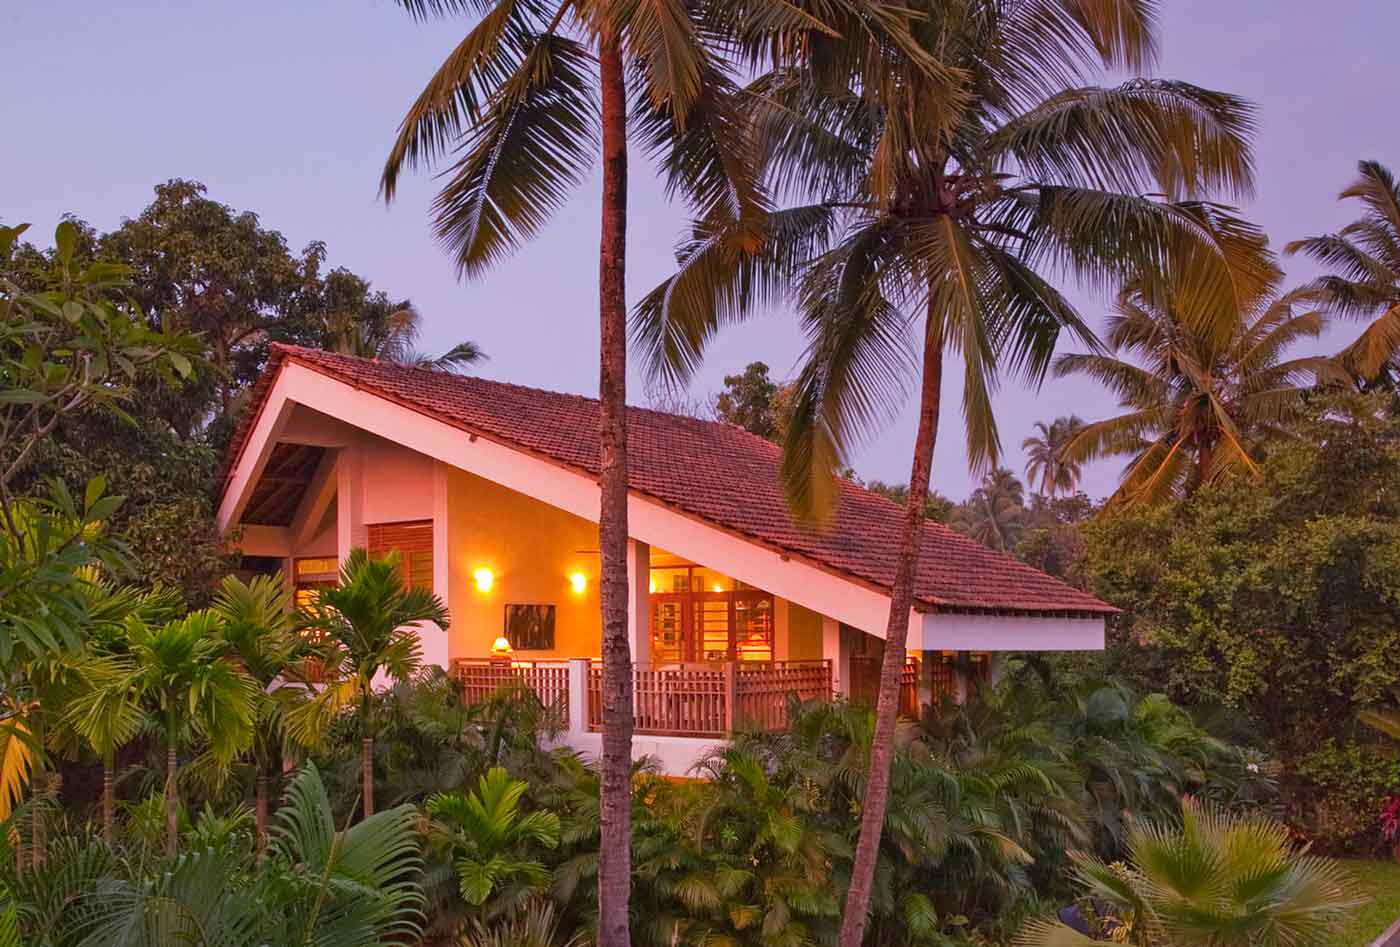 Luxury Villas in Coco Shambhala endow utmost luxury with great style.